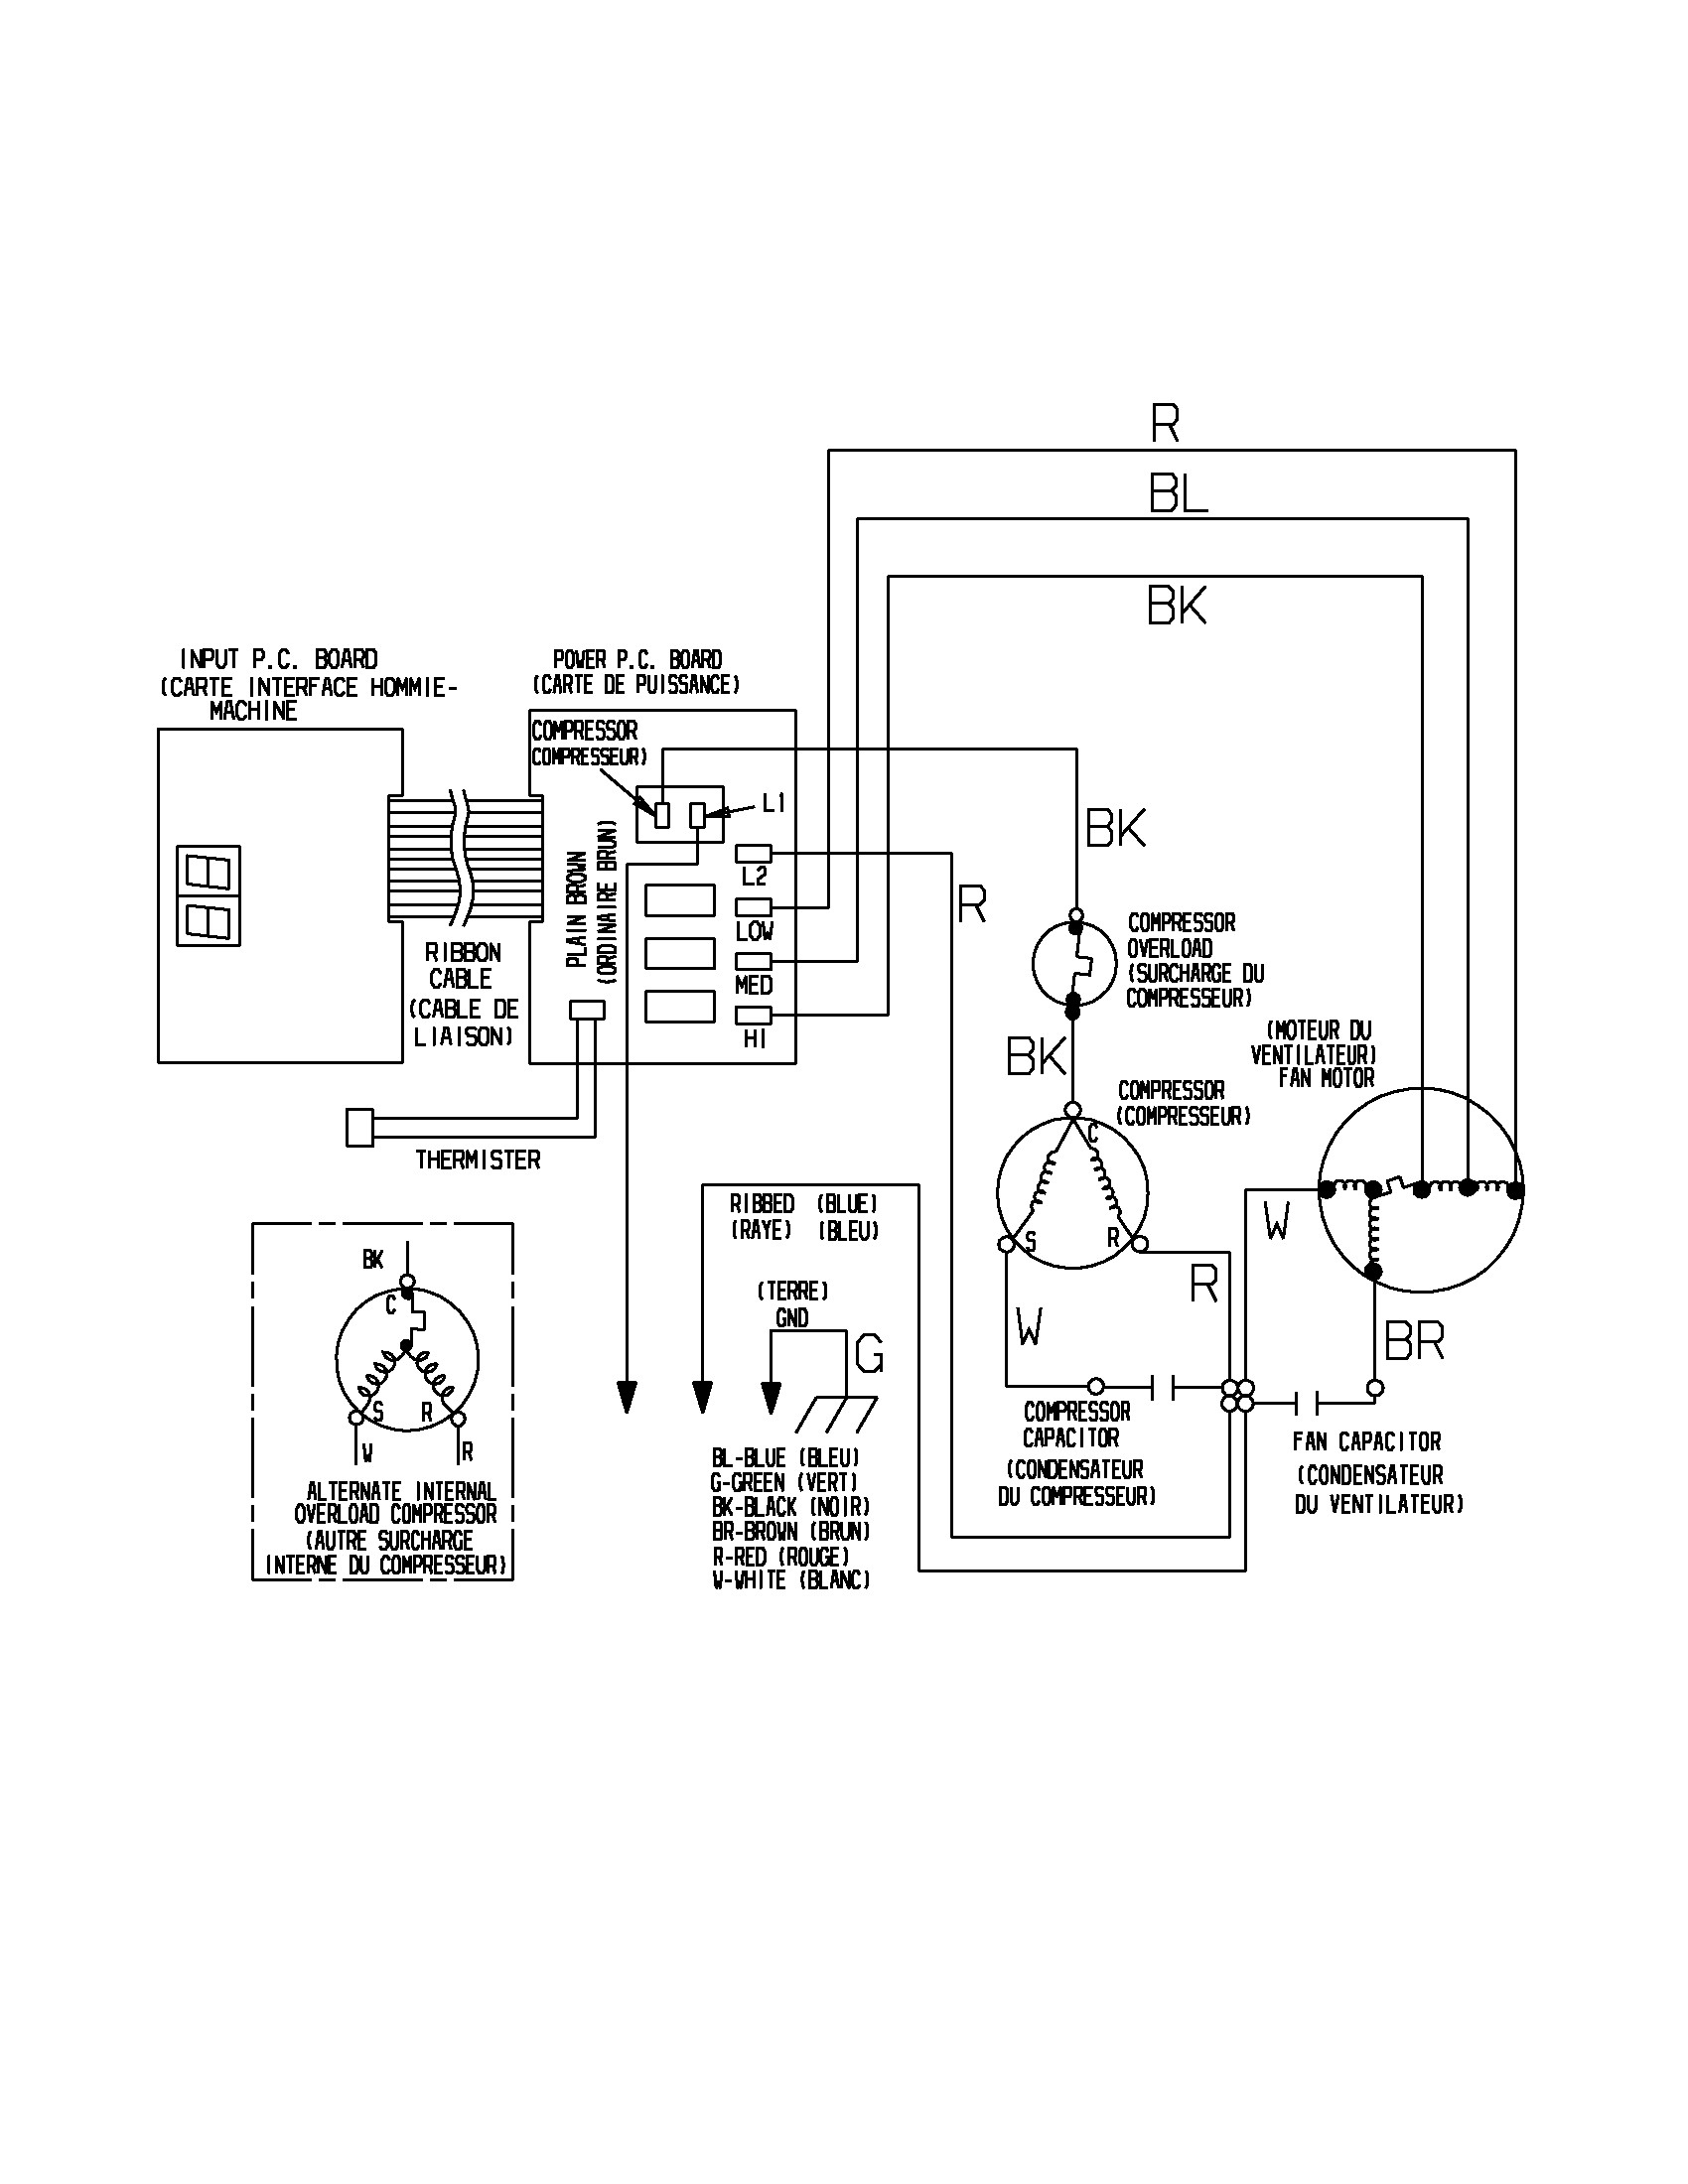 Wiring Diagram For Central Ac | Manual E-Books - Air Conditioner Wiring Diagram Capacitor